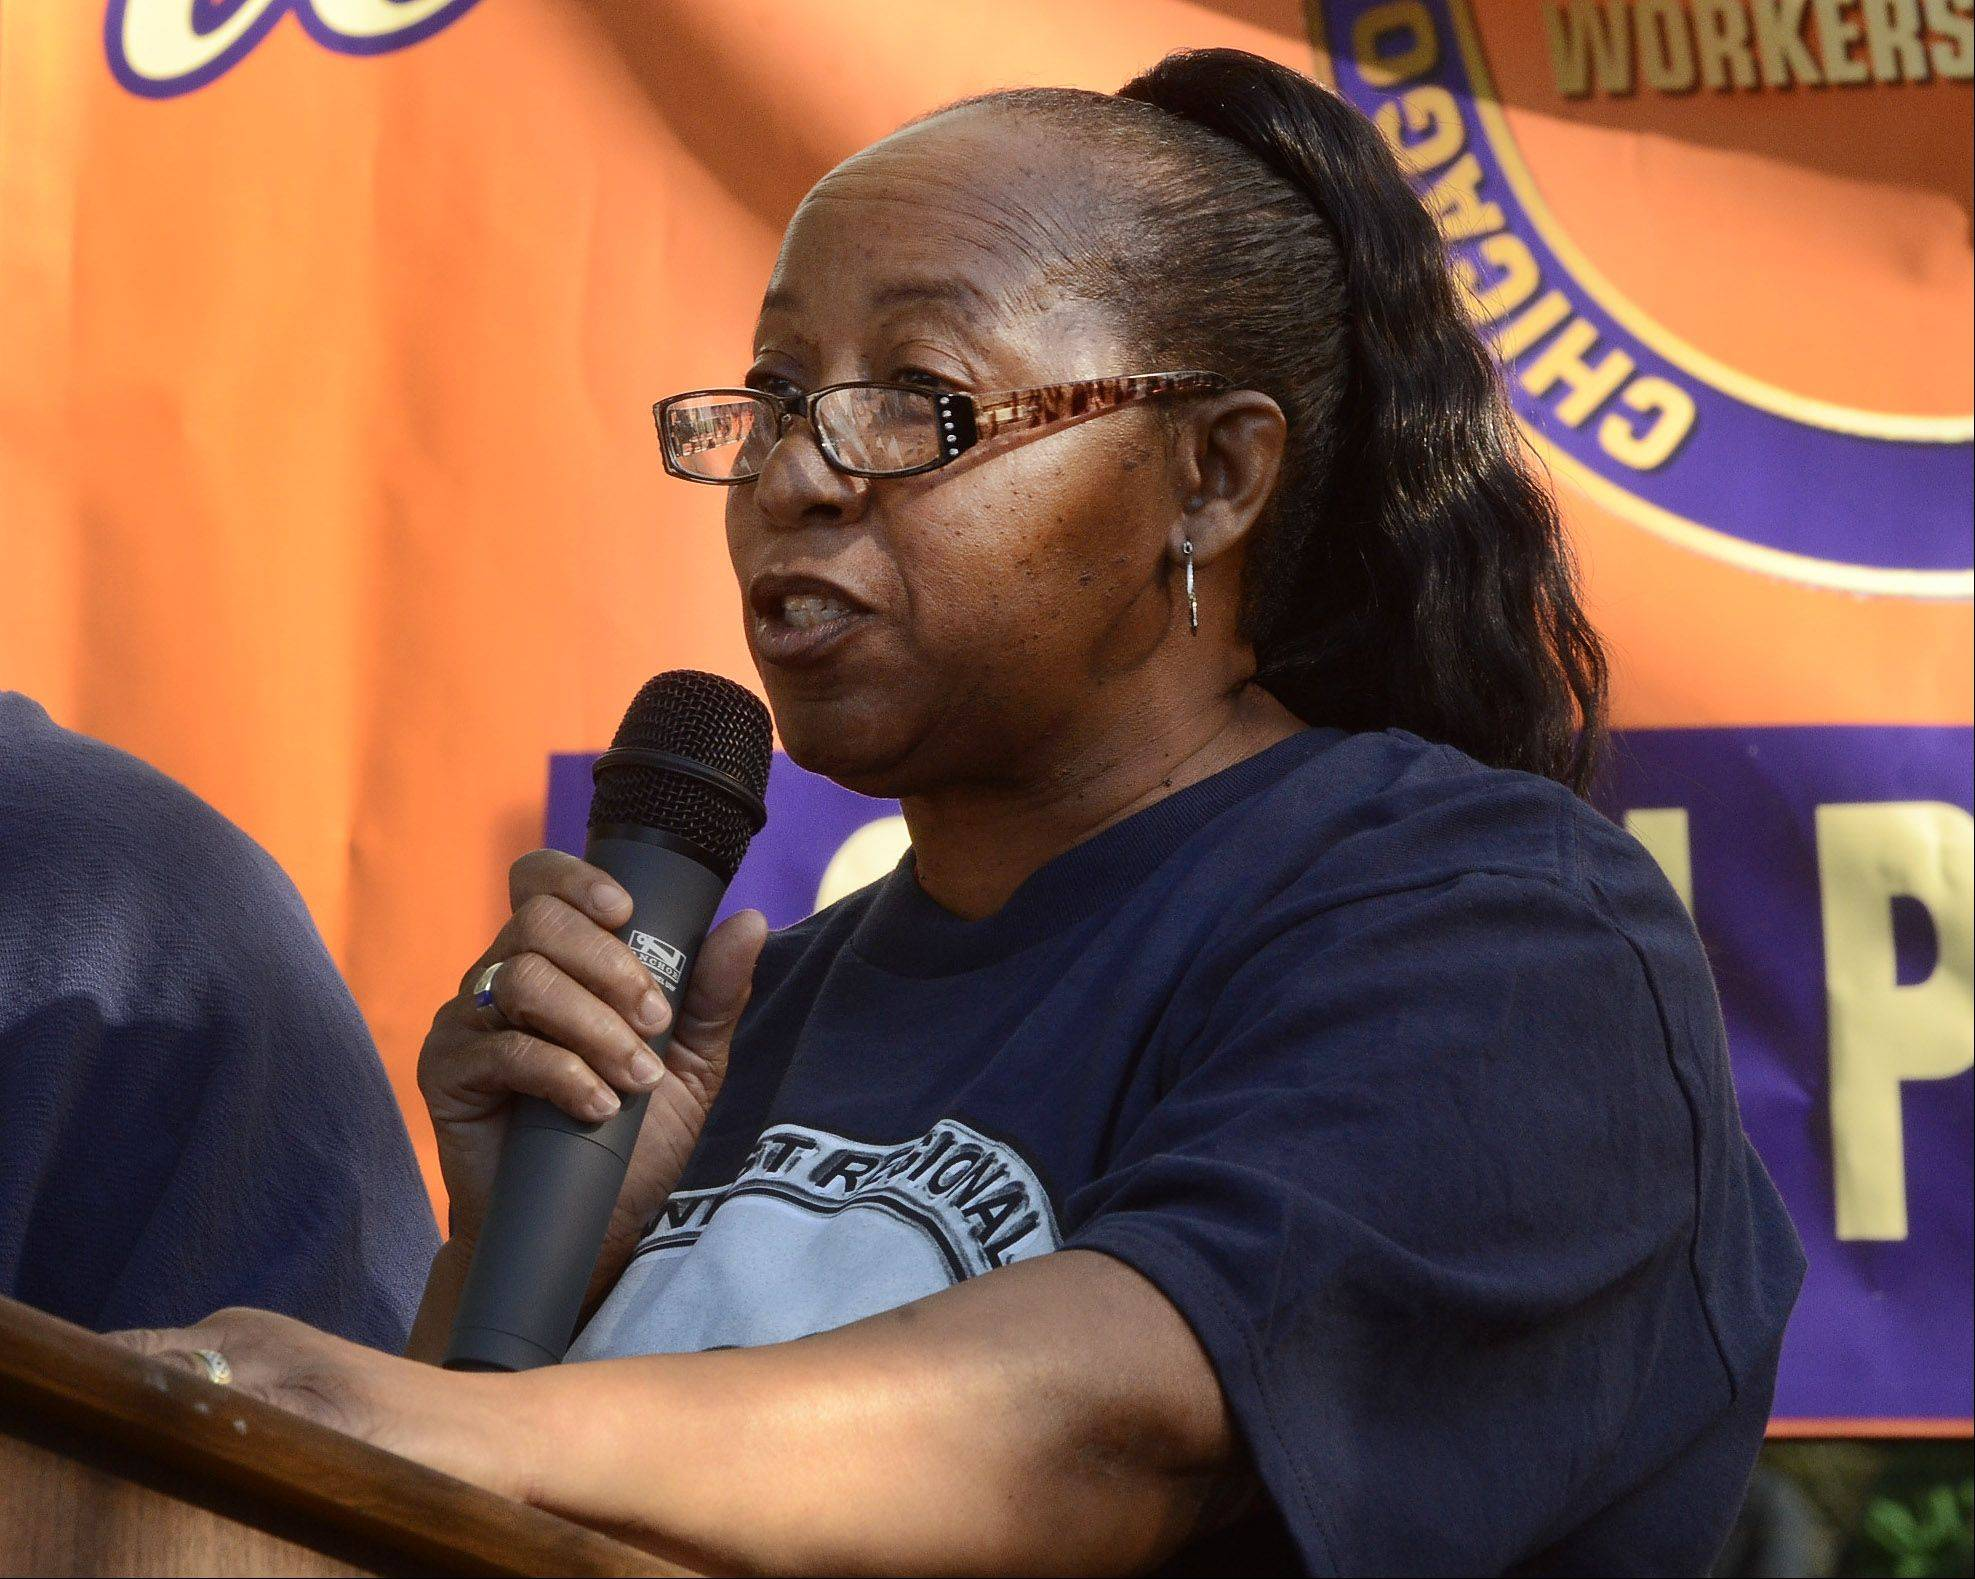 Ruby Sims, factory worker and president of Local 39C, Workers United, SEIU, speaks to a rally in front of Hart Schaffner & Marx factory in Des Plaines, where workers protested the proposed Trans-Pacific Partnership free trade agreement they say would impact textile and apparel manufacturing jobs.